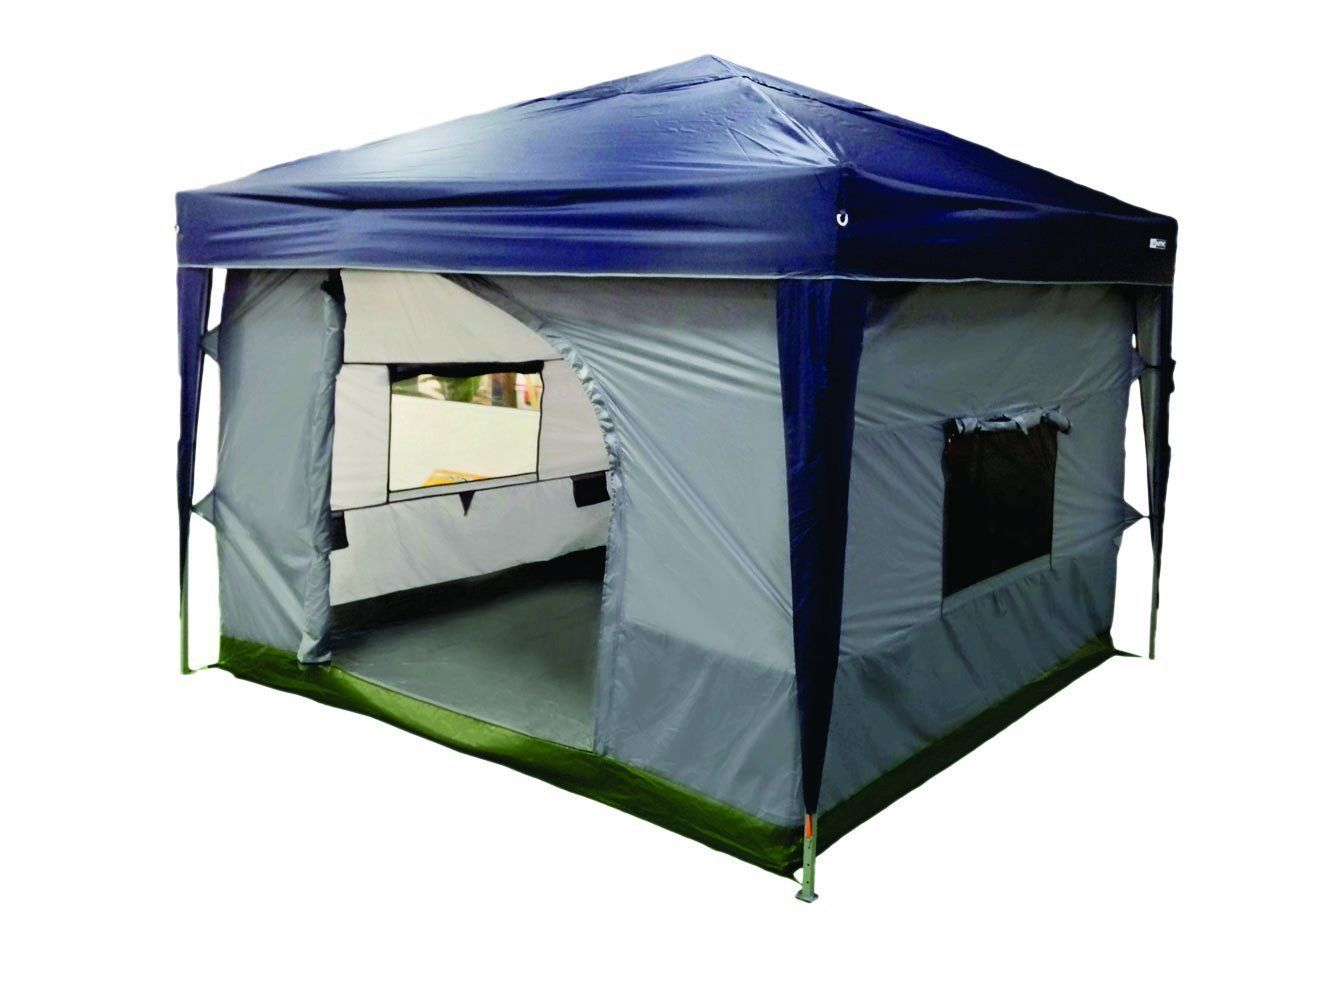 tent pop up tent tents for sale c&ing tents coleman tents c&ing gear c&ing equipment c&ing  sc 1 st  Pinterest : big cheap tents - memphite.com